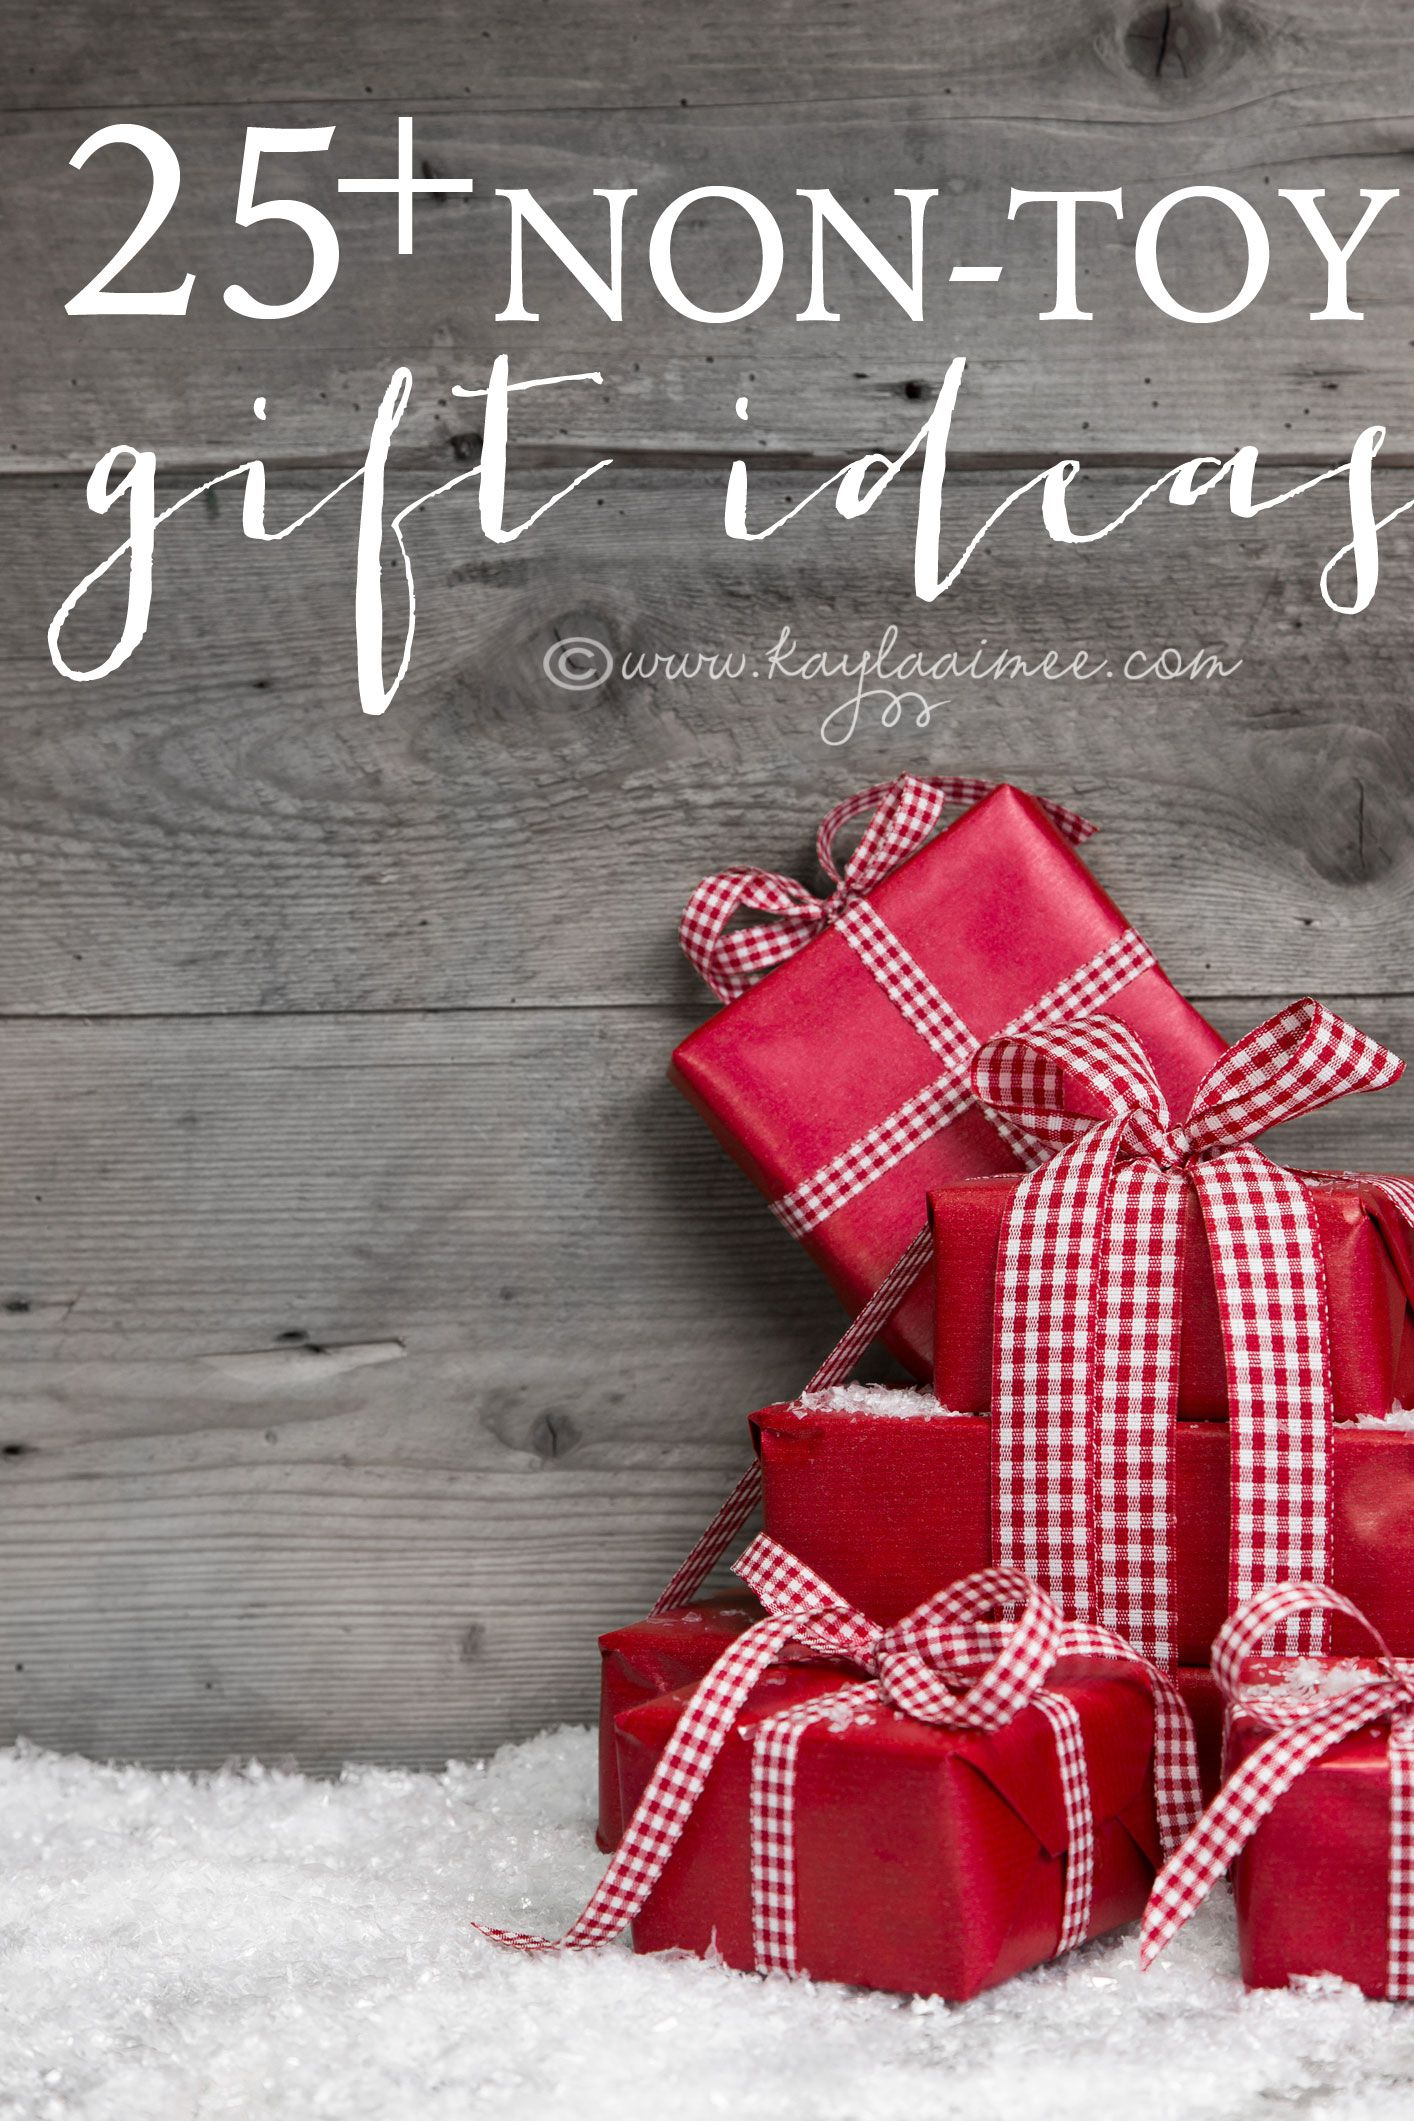 How To Have A No-Toy Christmas: 25+ Non-Toy Gift Ideas | My Blog ...